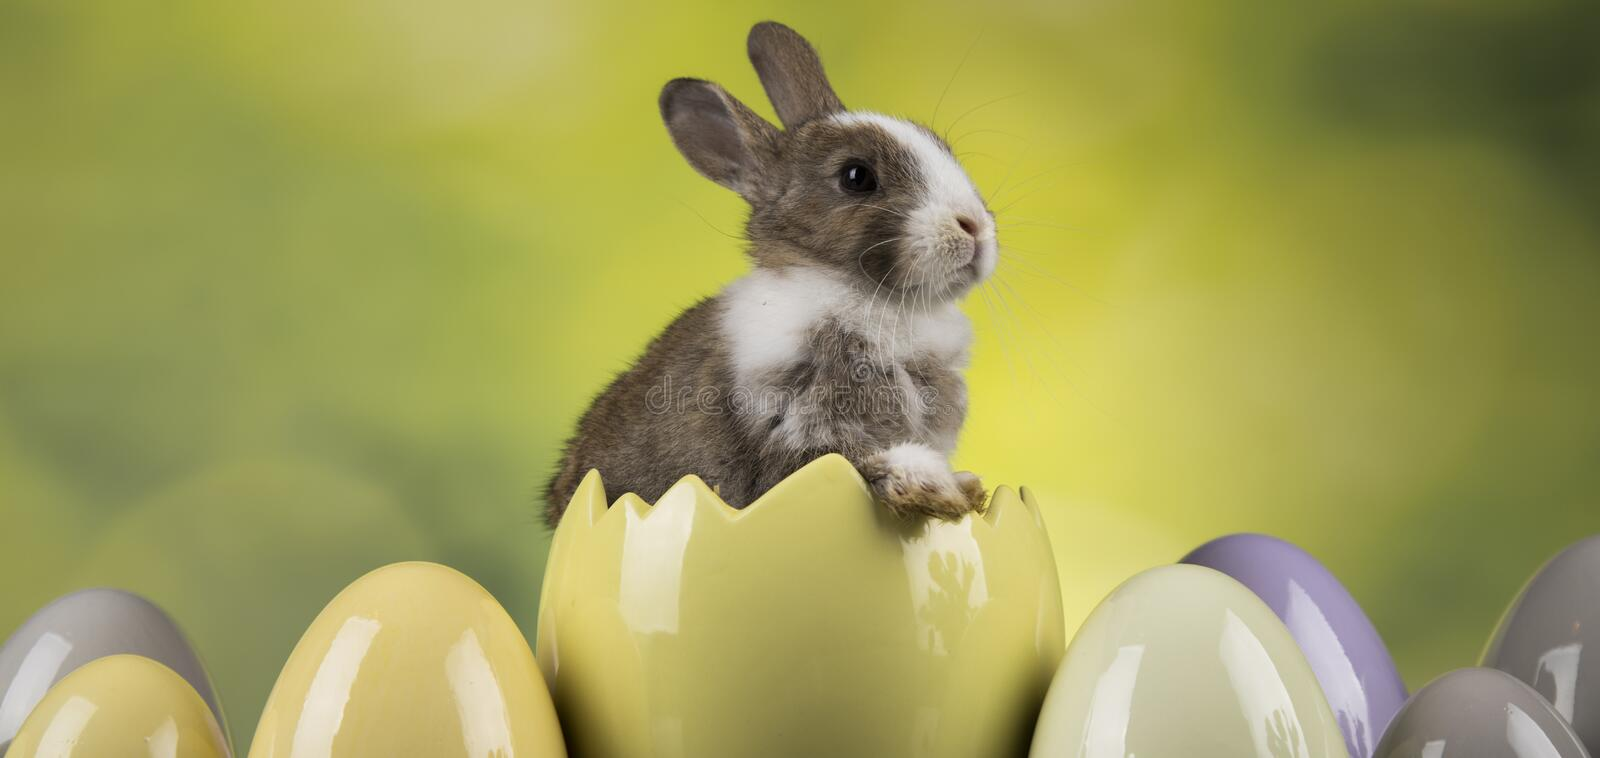 Little cute baby rabbit, Easter animal holiday, eggs and green background. Little cute baby rabbit and easter eggs royalty free stock photo